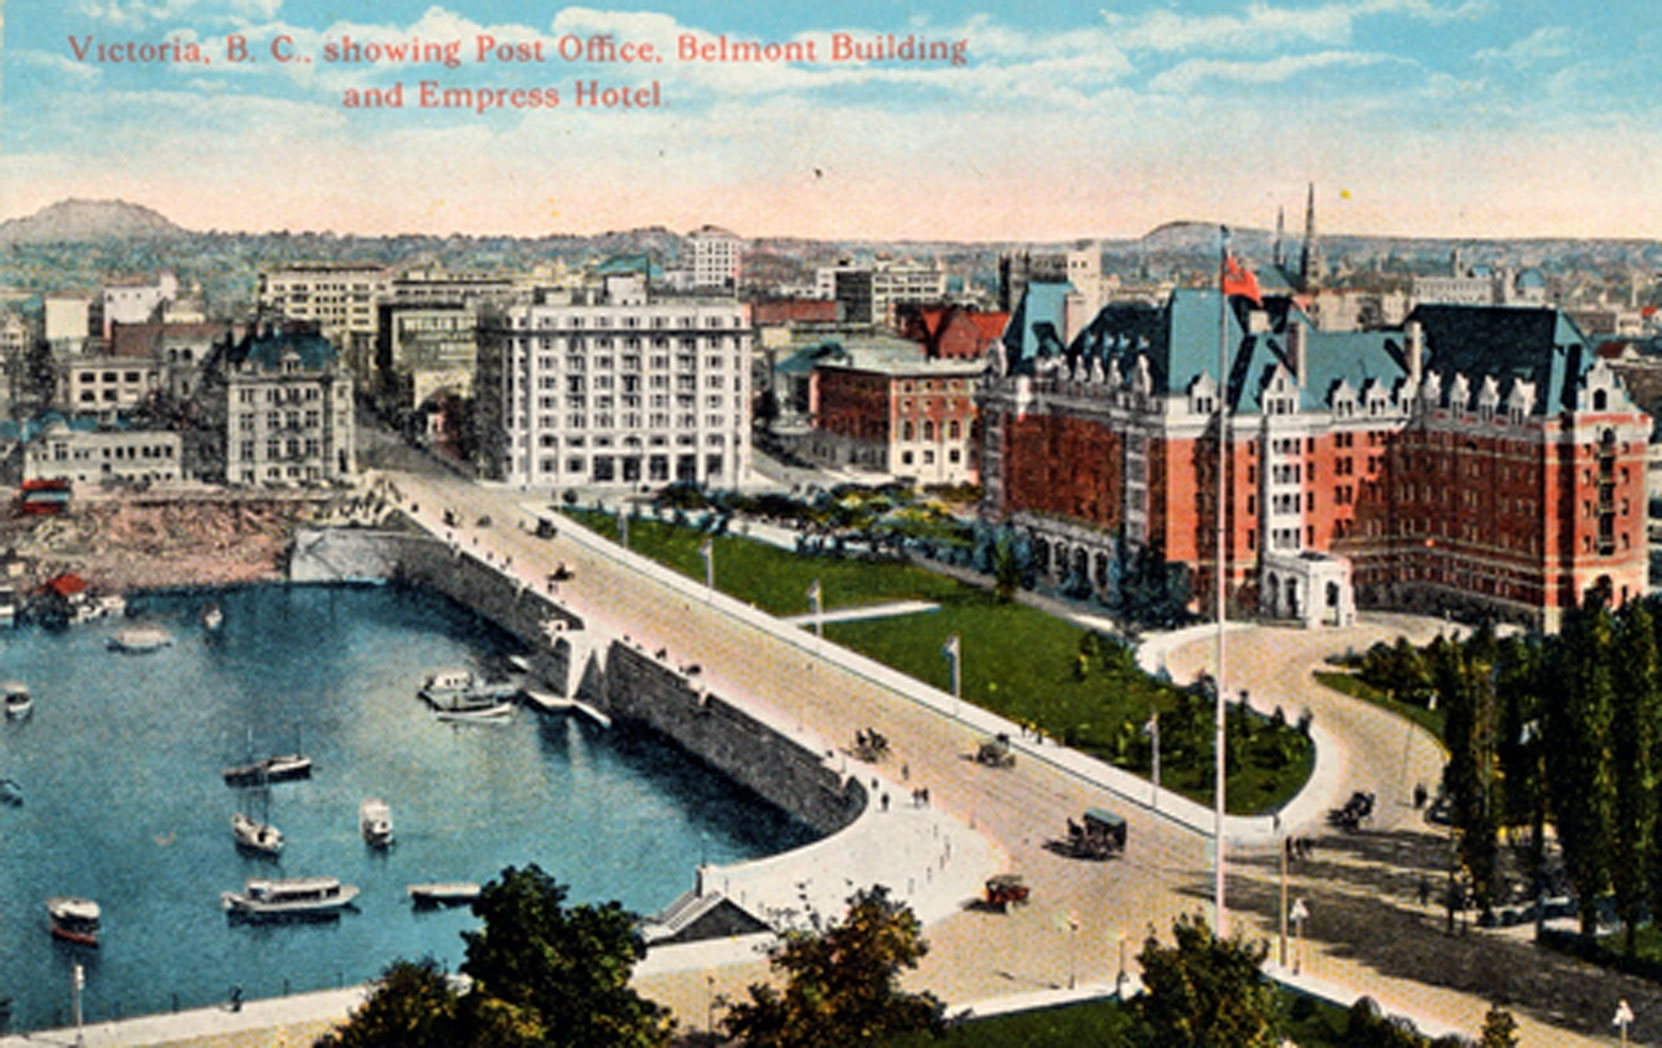 Postcard showing the Belmont Building, the Union Club, the Empress Hotel and the Causeway, circa 1925 (Author's collection)